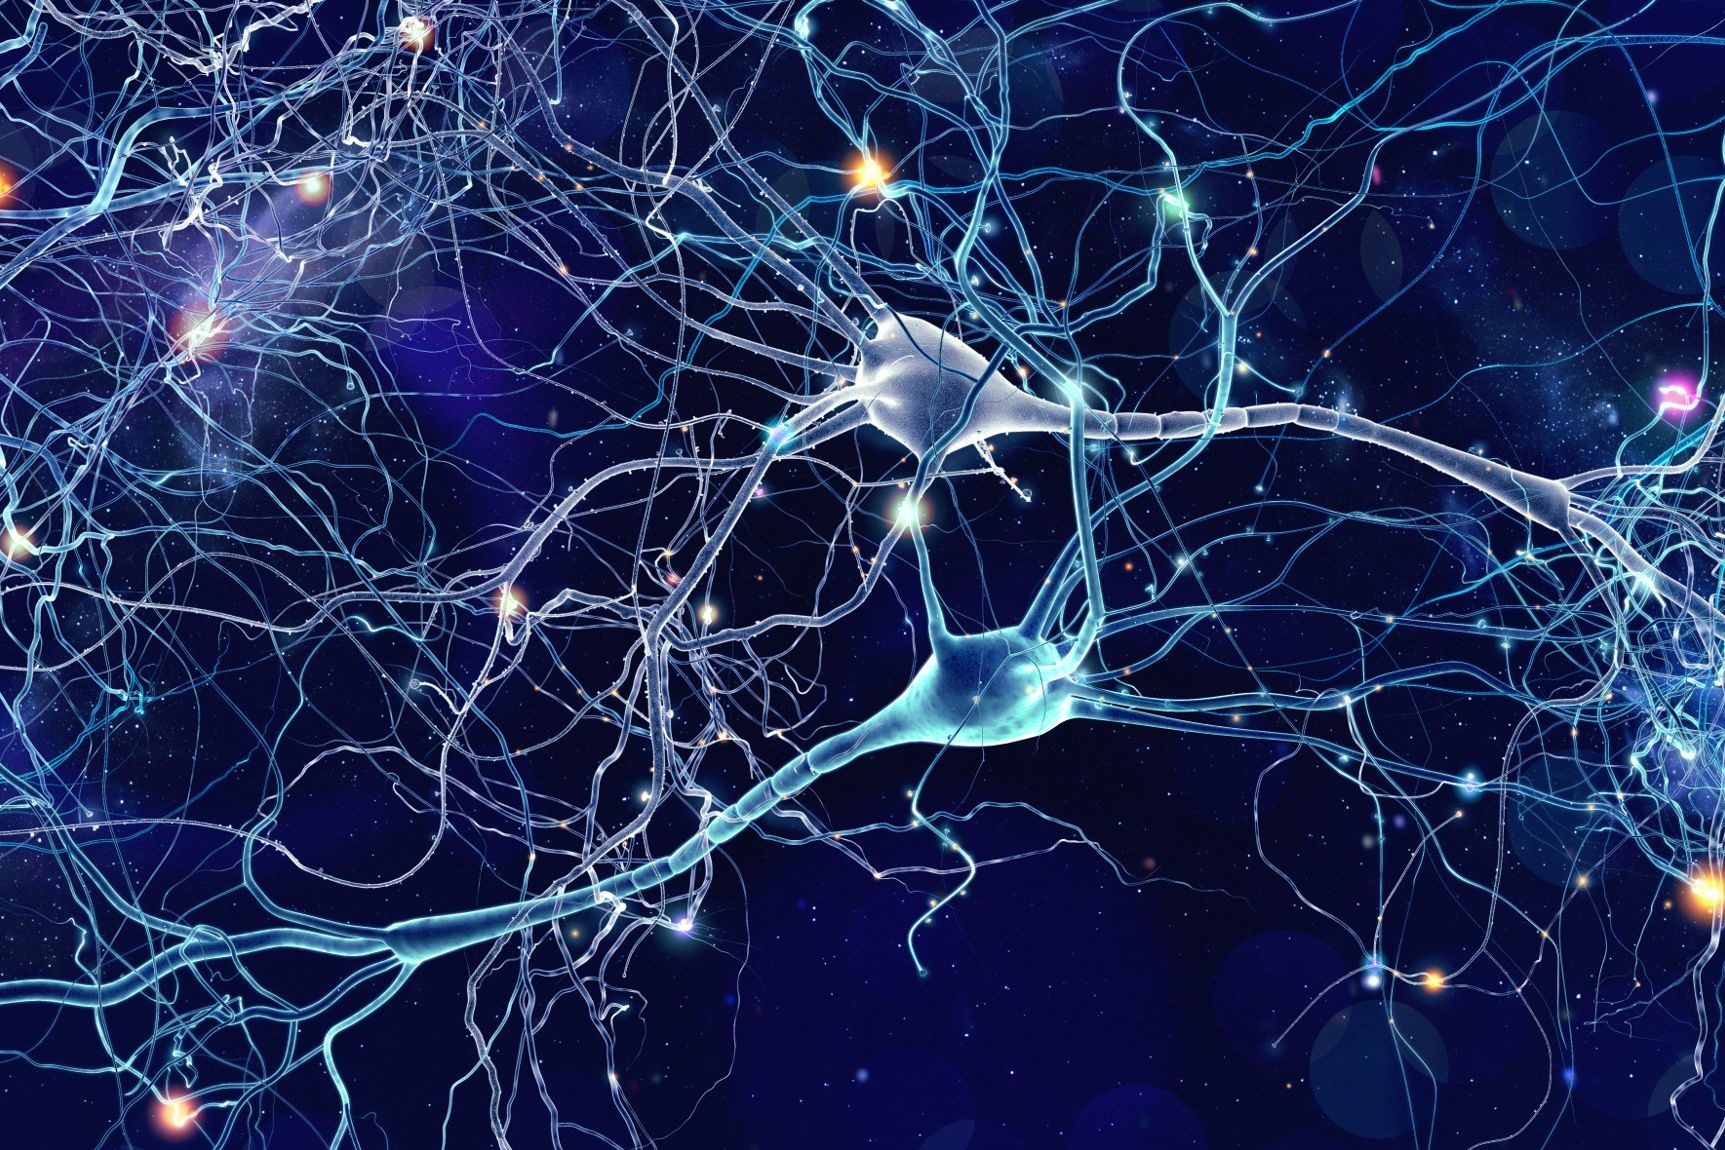 Conceptual illustration of neuron cells with glowing link knots in abstract dark space, high resolution 3D illustration.